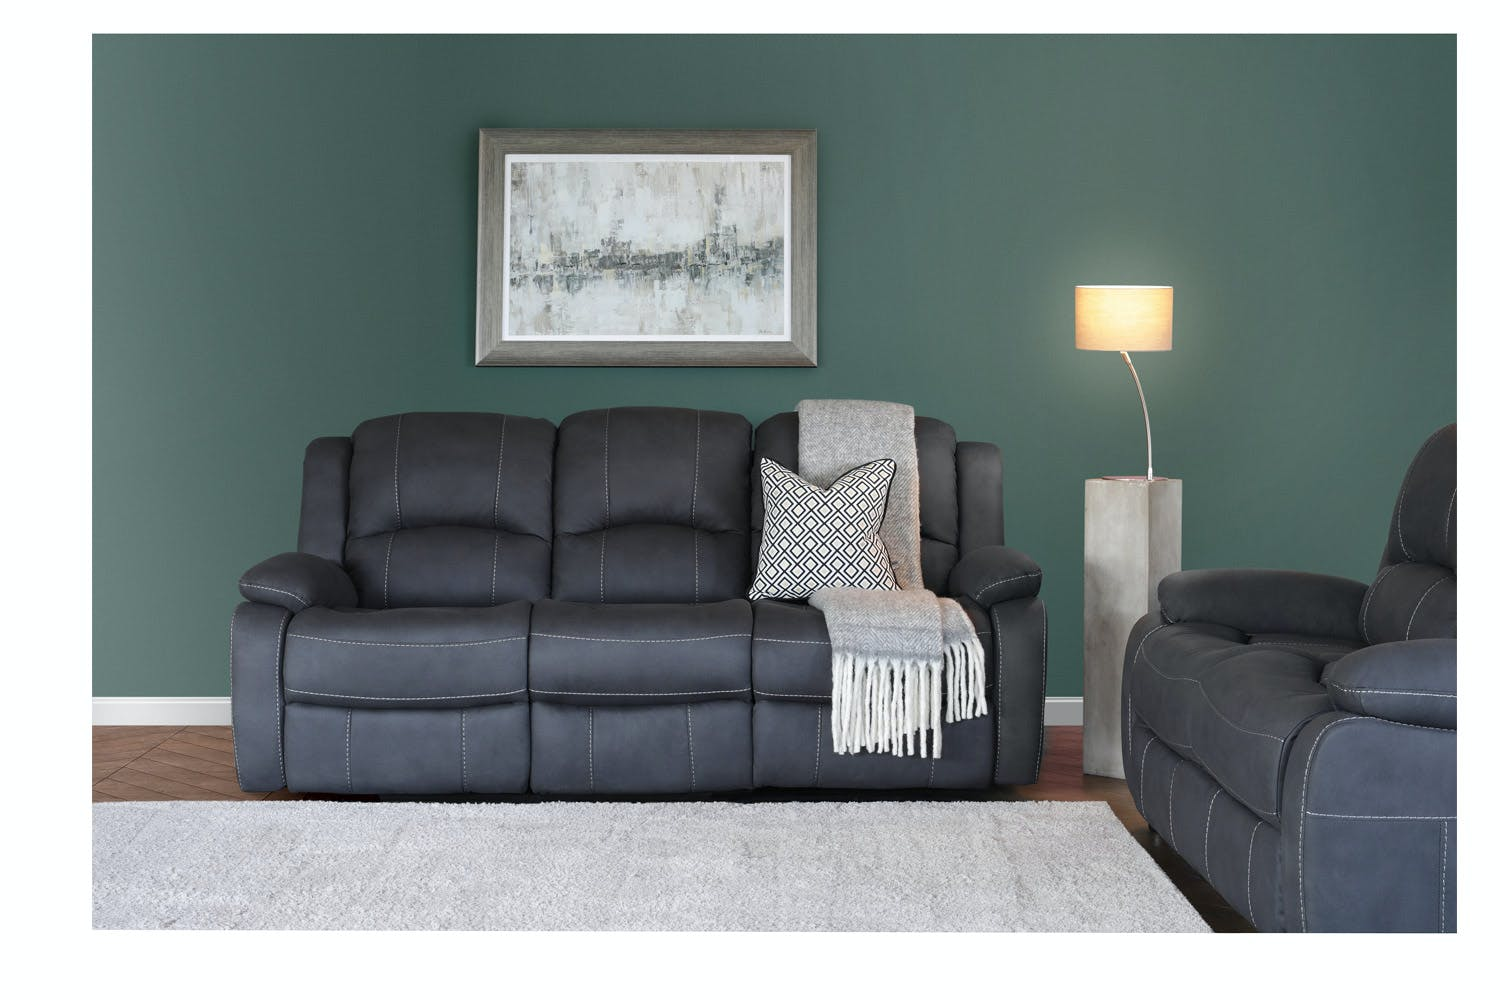 Ramona 3 Seater Recliner | Manual